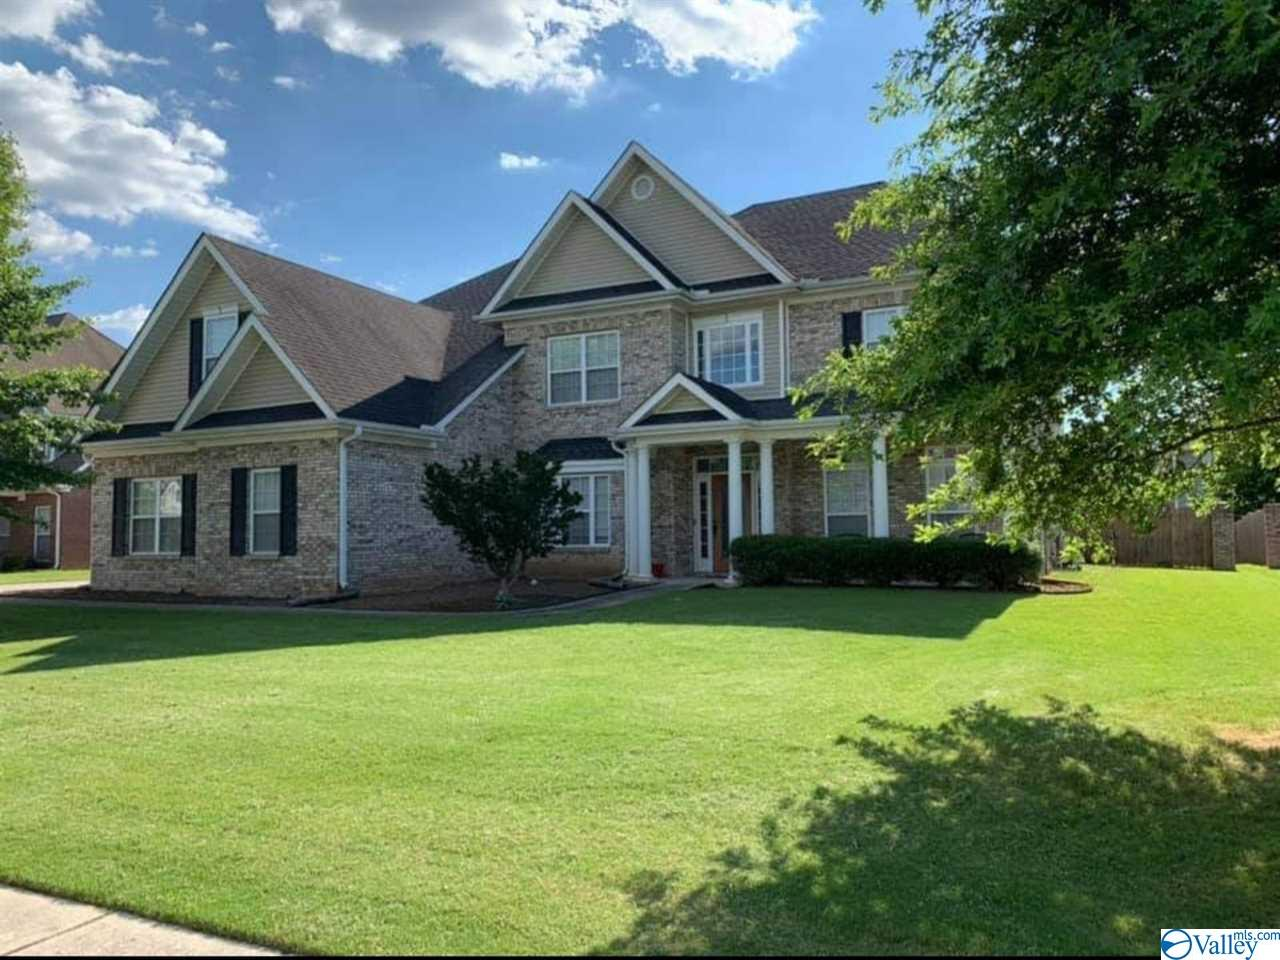 Welcome to 3210 Mossy Rock Rd in the Hampton Cove subdivision of Cobblestone Cove.  This gorgeous home features 5 bedrooms and 5 bathrooms including a mother-in-law suite on the first floor.  Two family rooms on the first floor, an office space upstairs and an additional bonus room off of one of the bedrooms means there's plenty of room to spread out.  All of the large bedrooms have walk-in closets and their own bathroom.  The kitchen features granite countertops, a pantry, an island with extra storage and lots of cabinet space.  Home comes with a membership to the Hampton House to access the pool, tennis, and clubhouse.